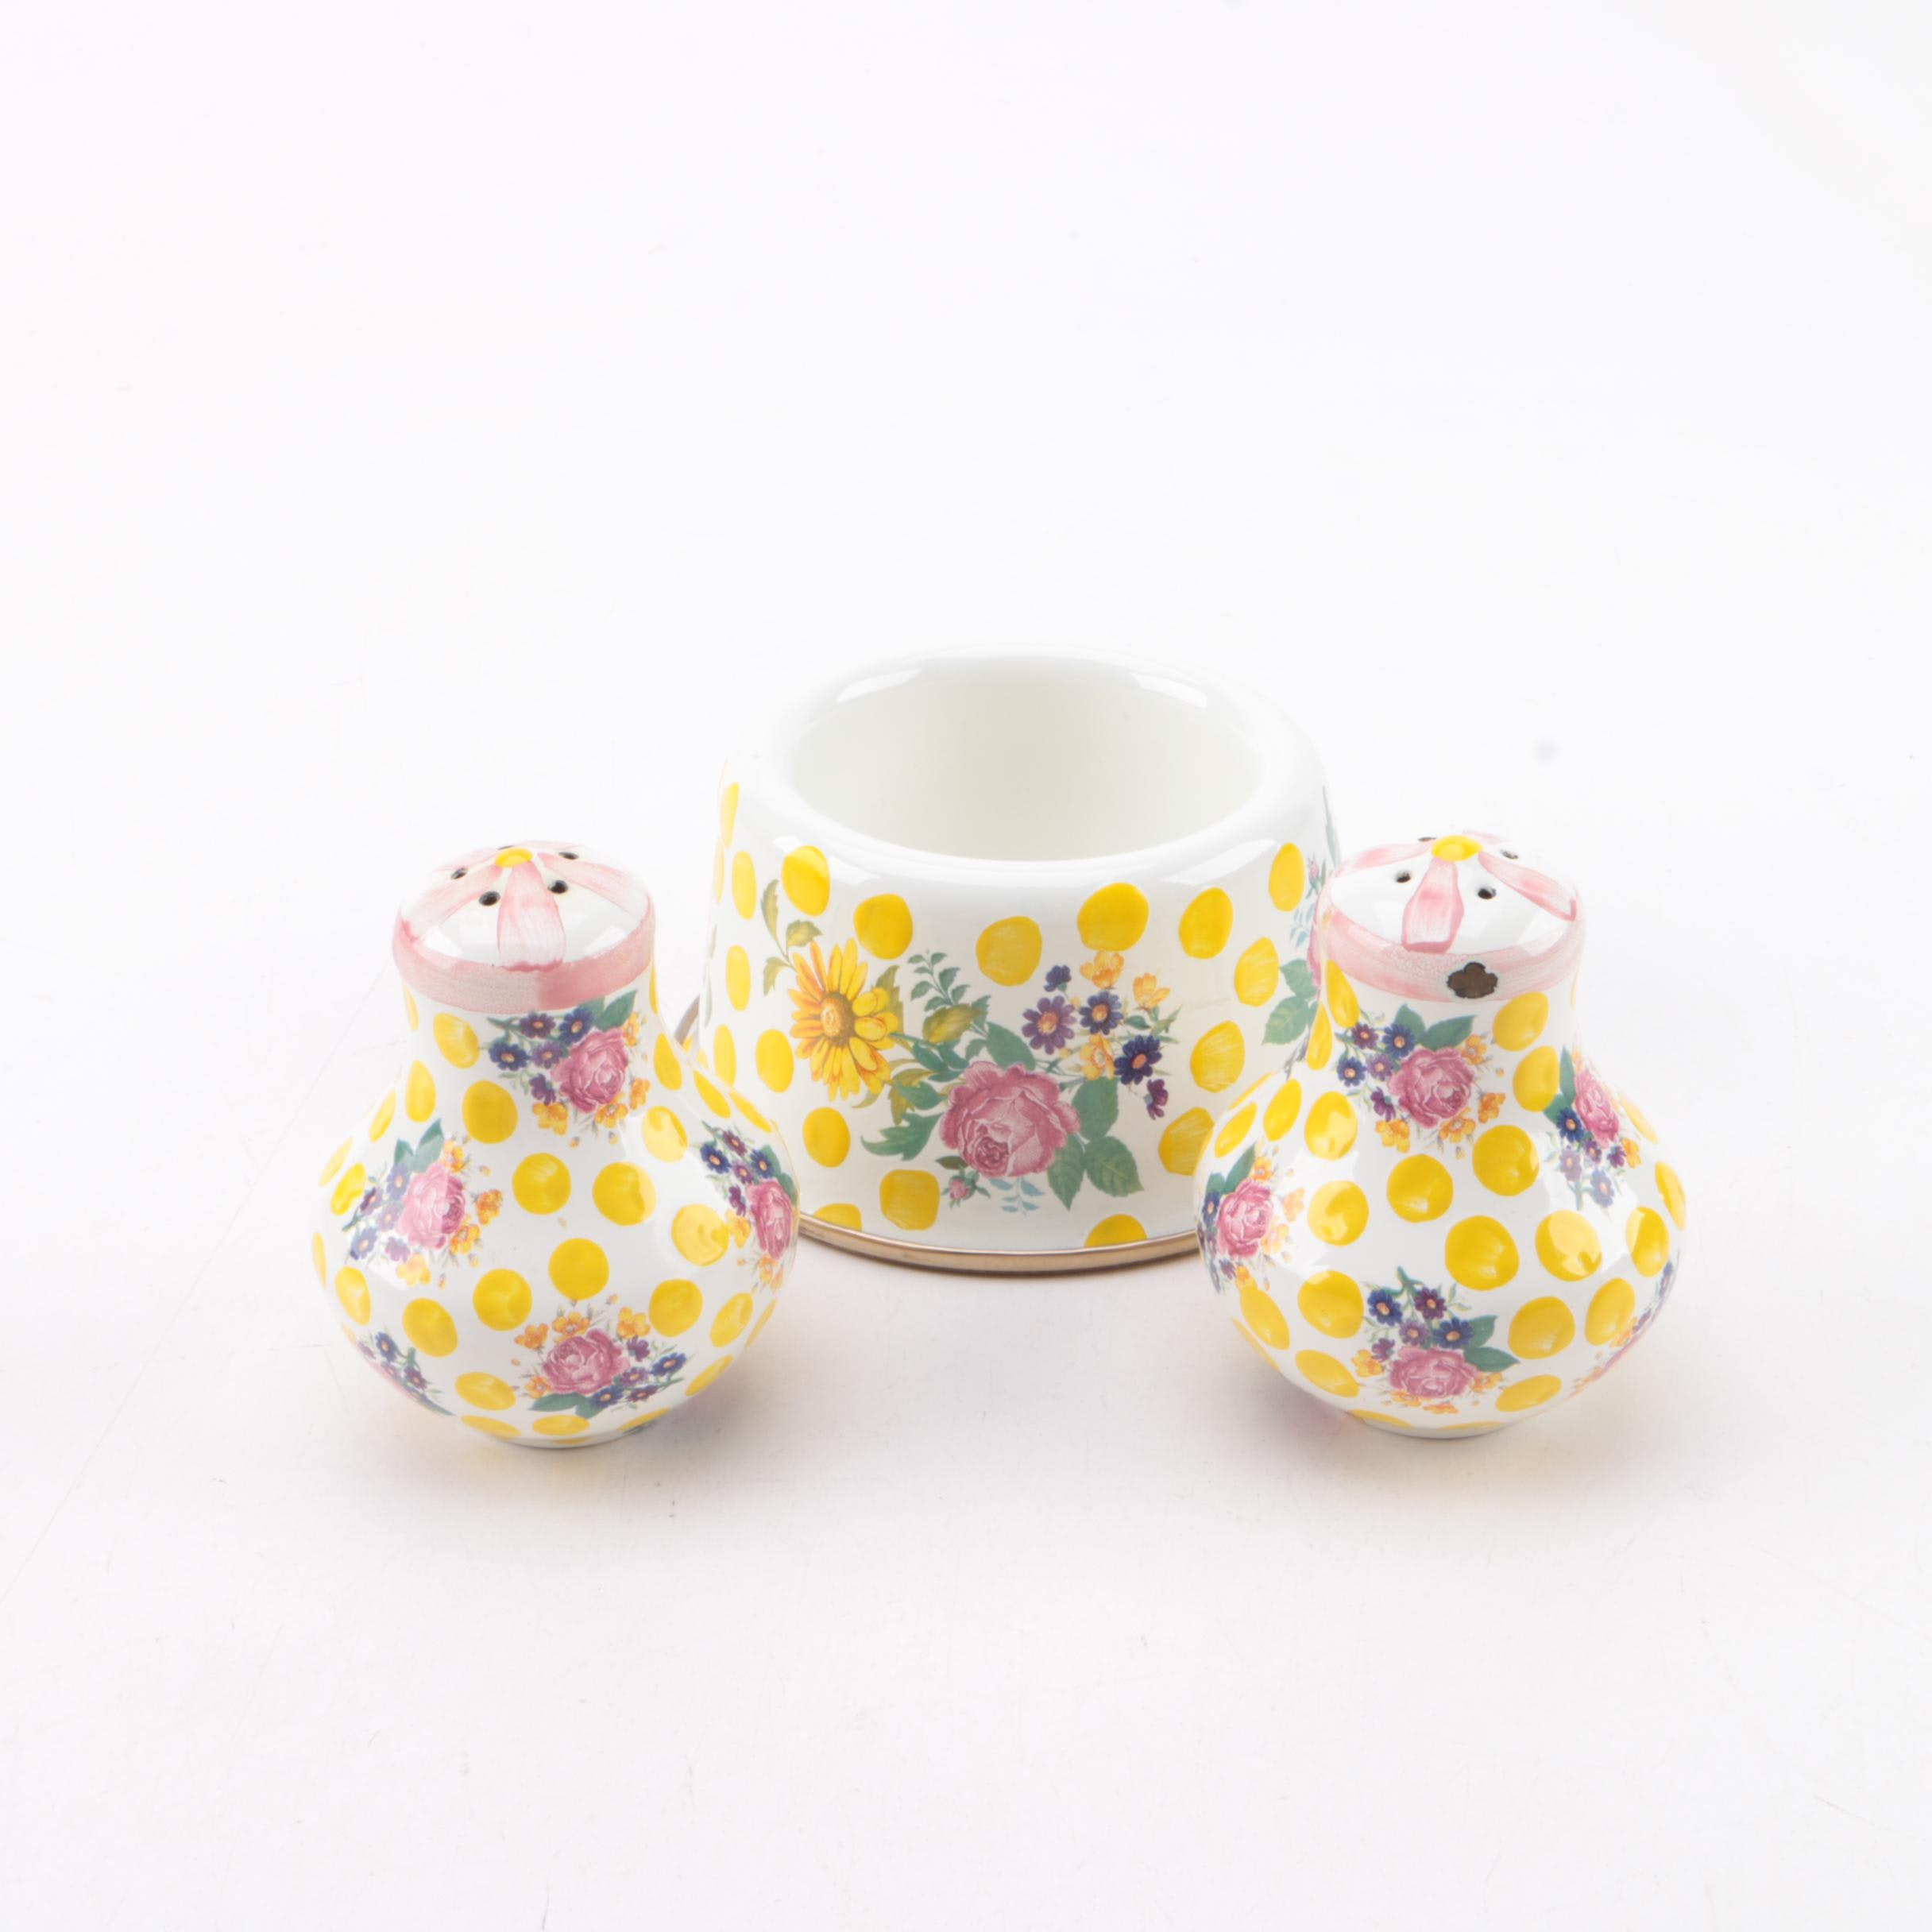 MacKenzie-Childs Salt and Pepper Shakers with Pet Dish